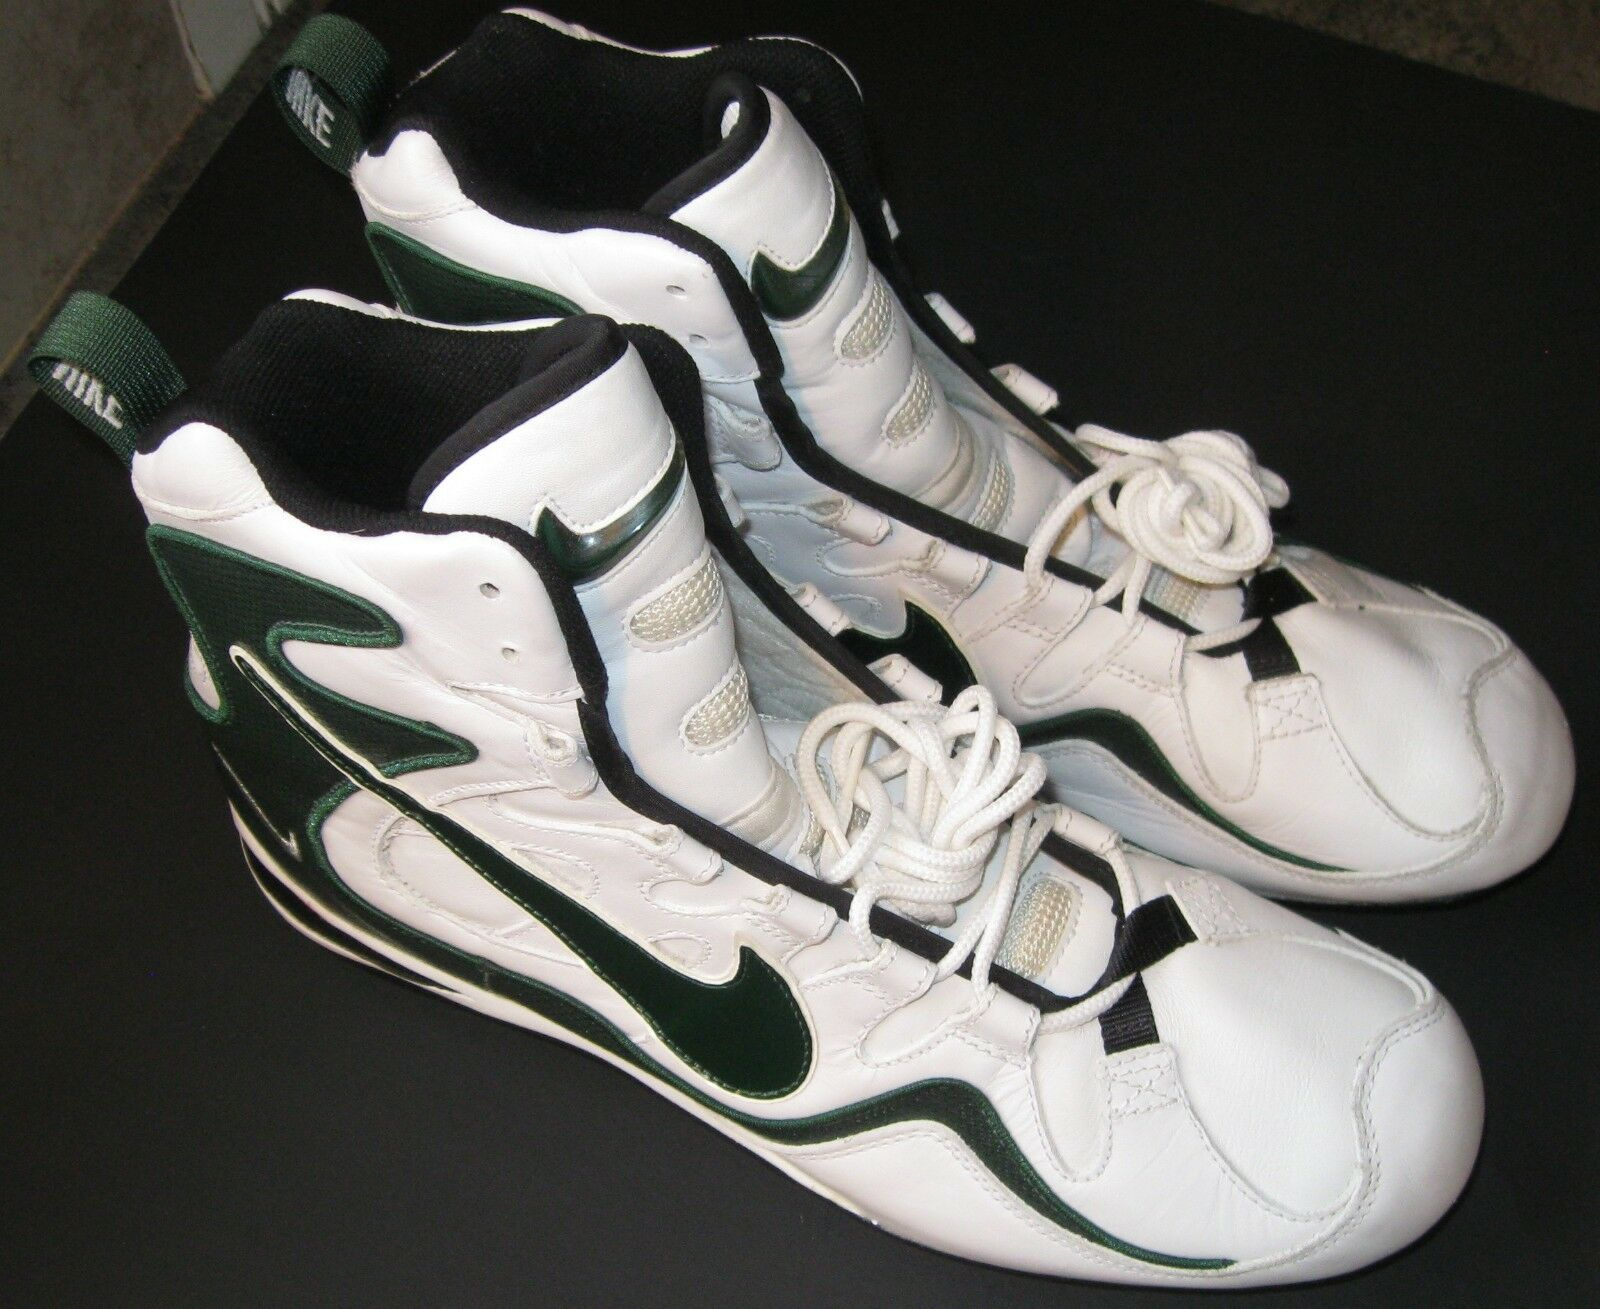 b772358be NEAR PERFECT MENS NIKE ZOOM AIR FOOTBALL CLEATS SIZE 14 REGGIE WHITE STYLE